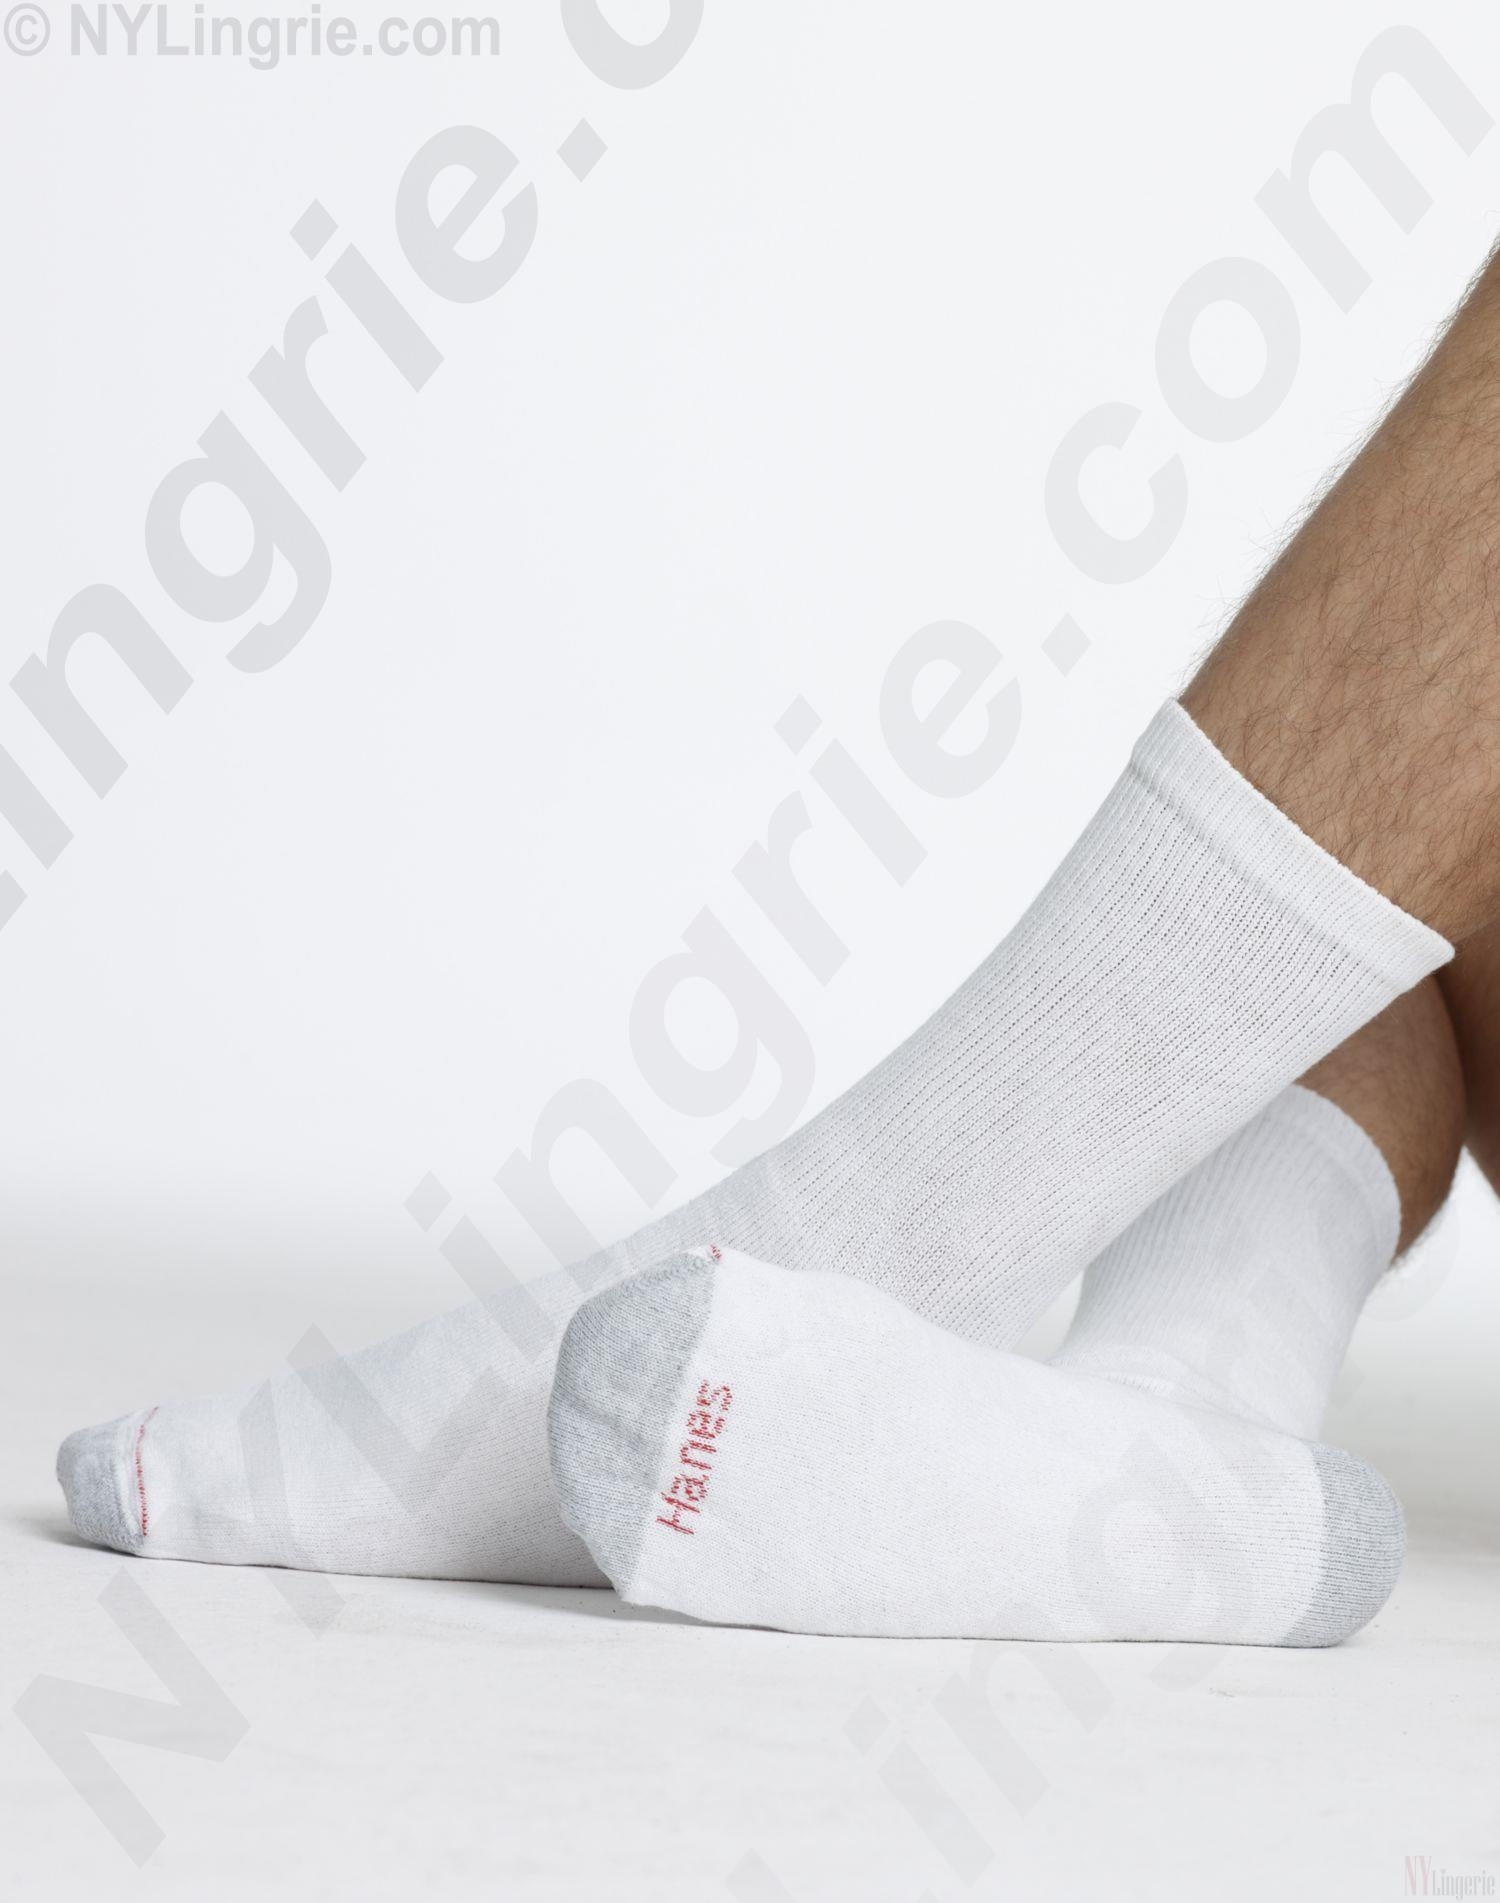 Hanes Crew Socks 6 Pack | Black | Grey | hanes cushion crew socks ...